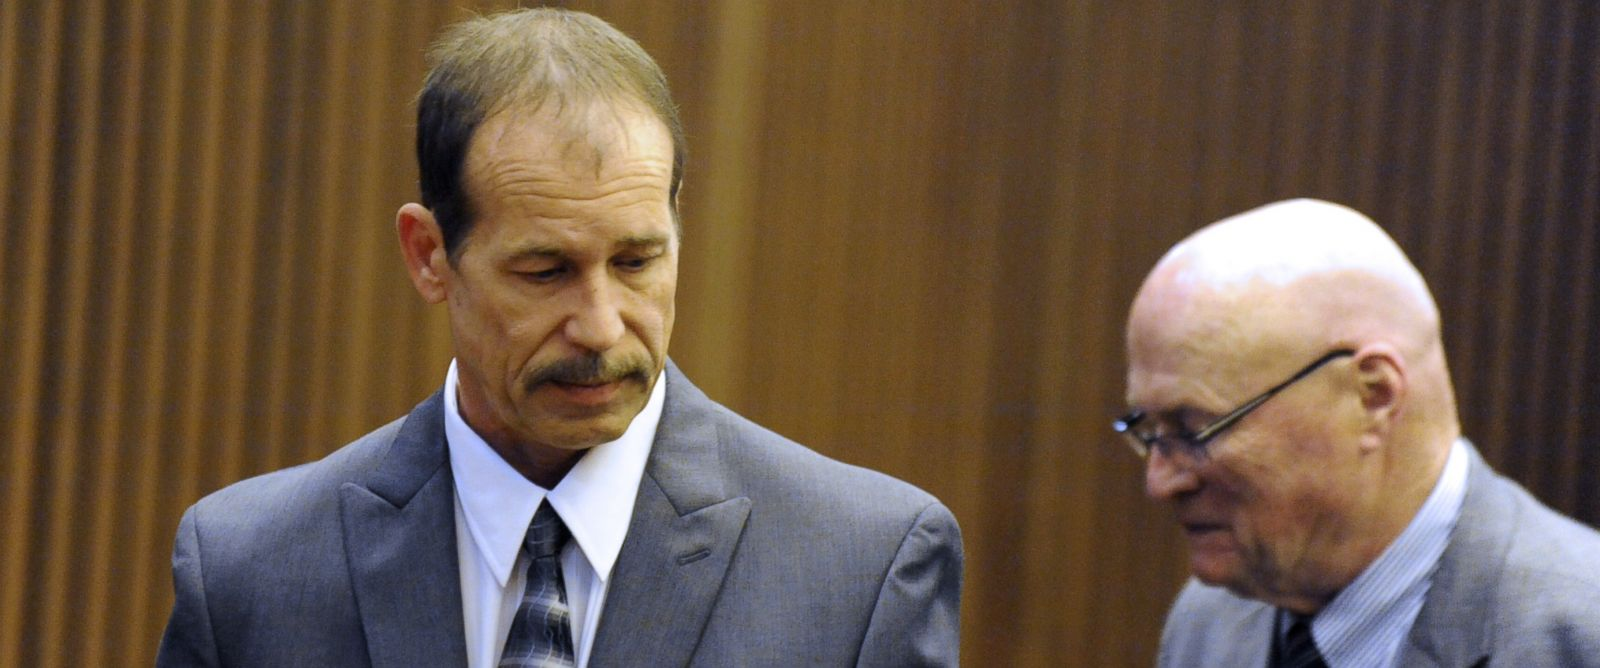 PHOTO: Theodore Wafer stands in court during his trial at Frank Murphy Hall of Justice in Detroit on July 24, 2014.